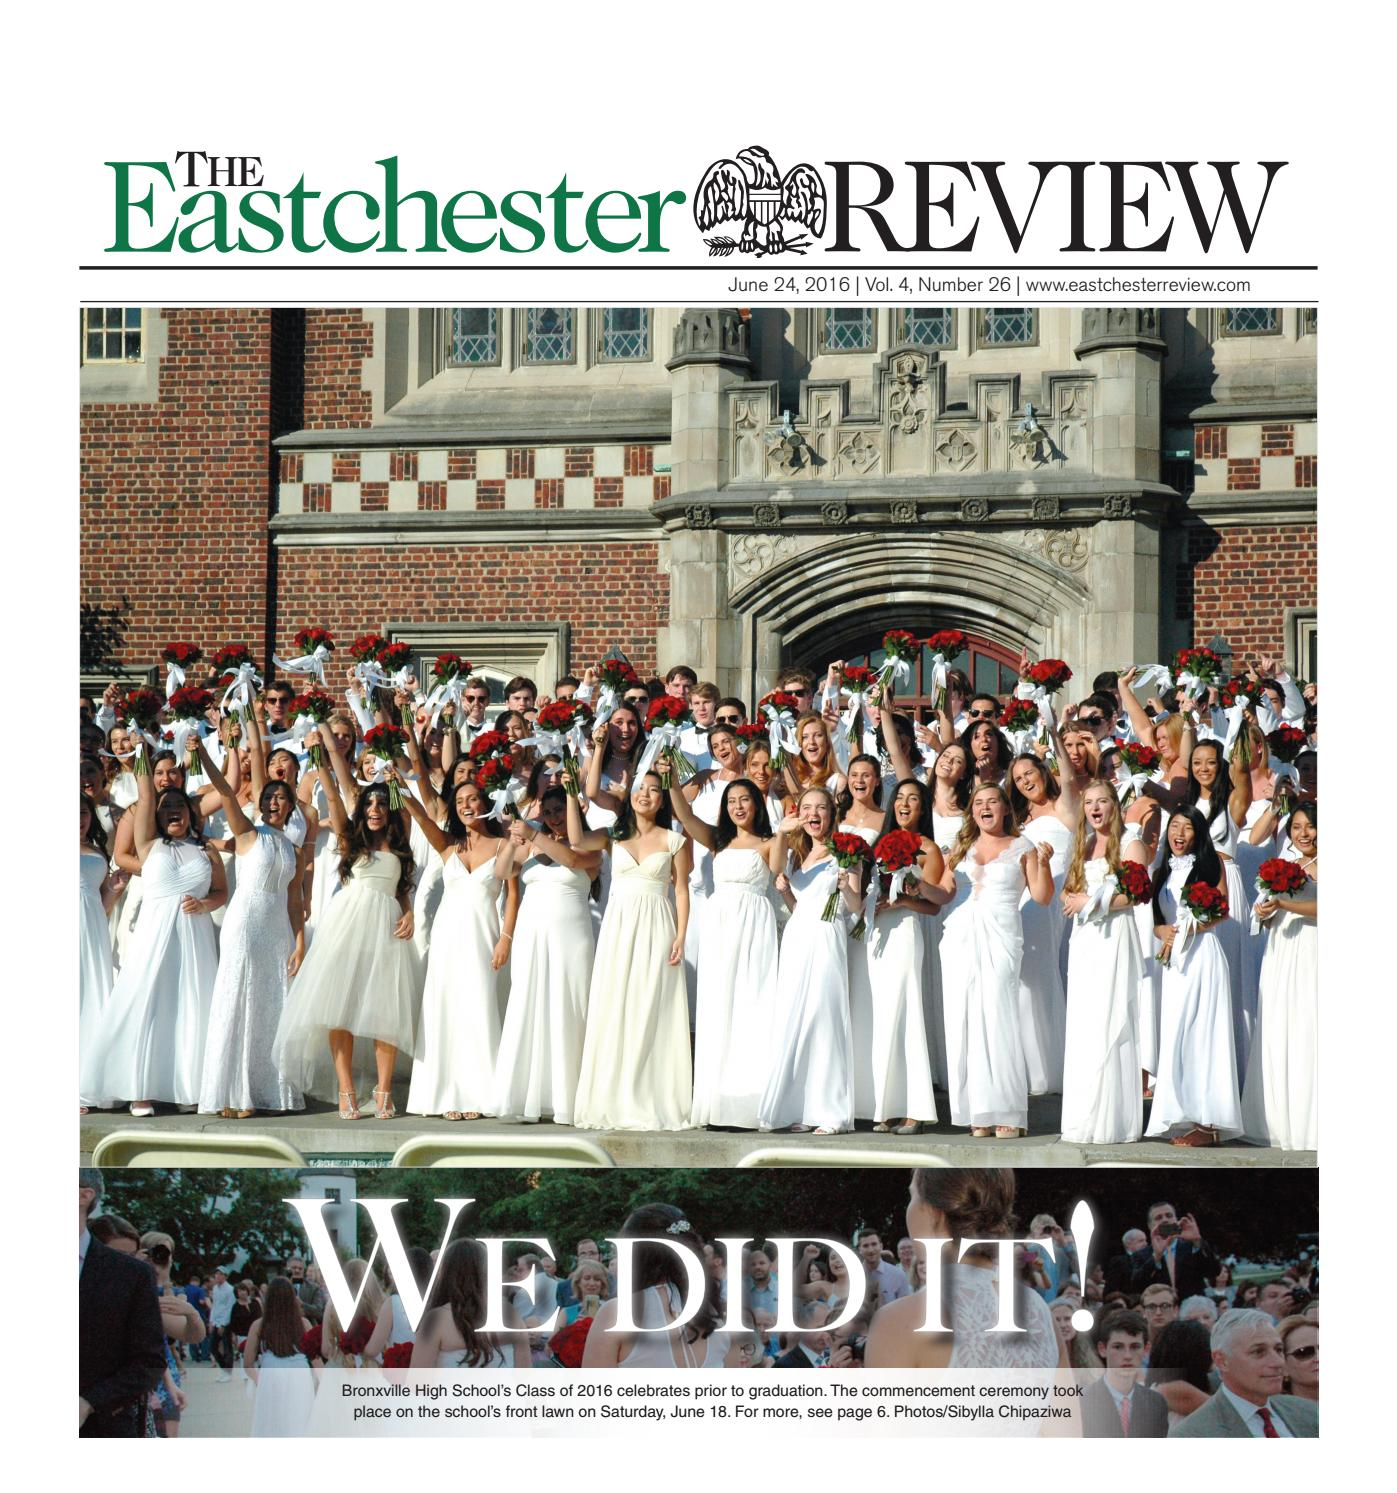 June 24, 2016 by The Eastchester Review - issuu